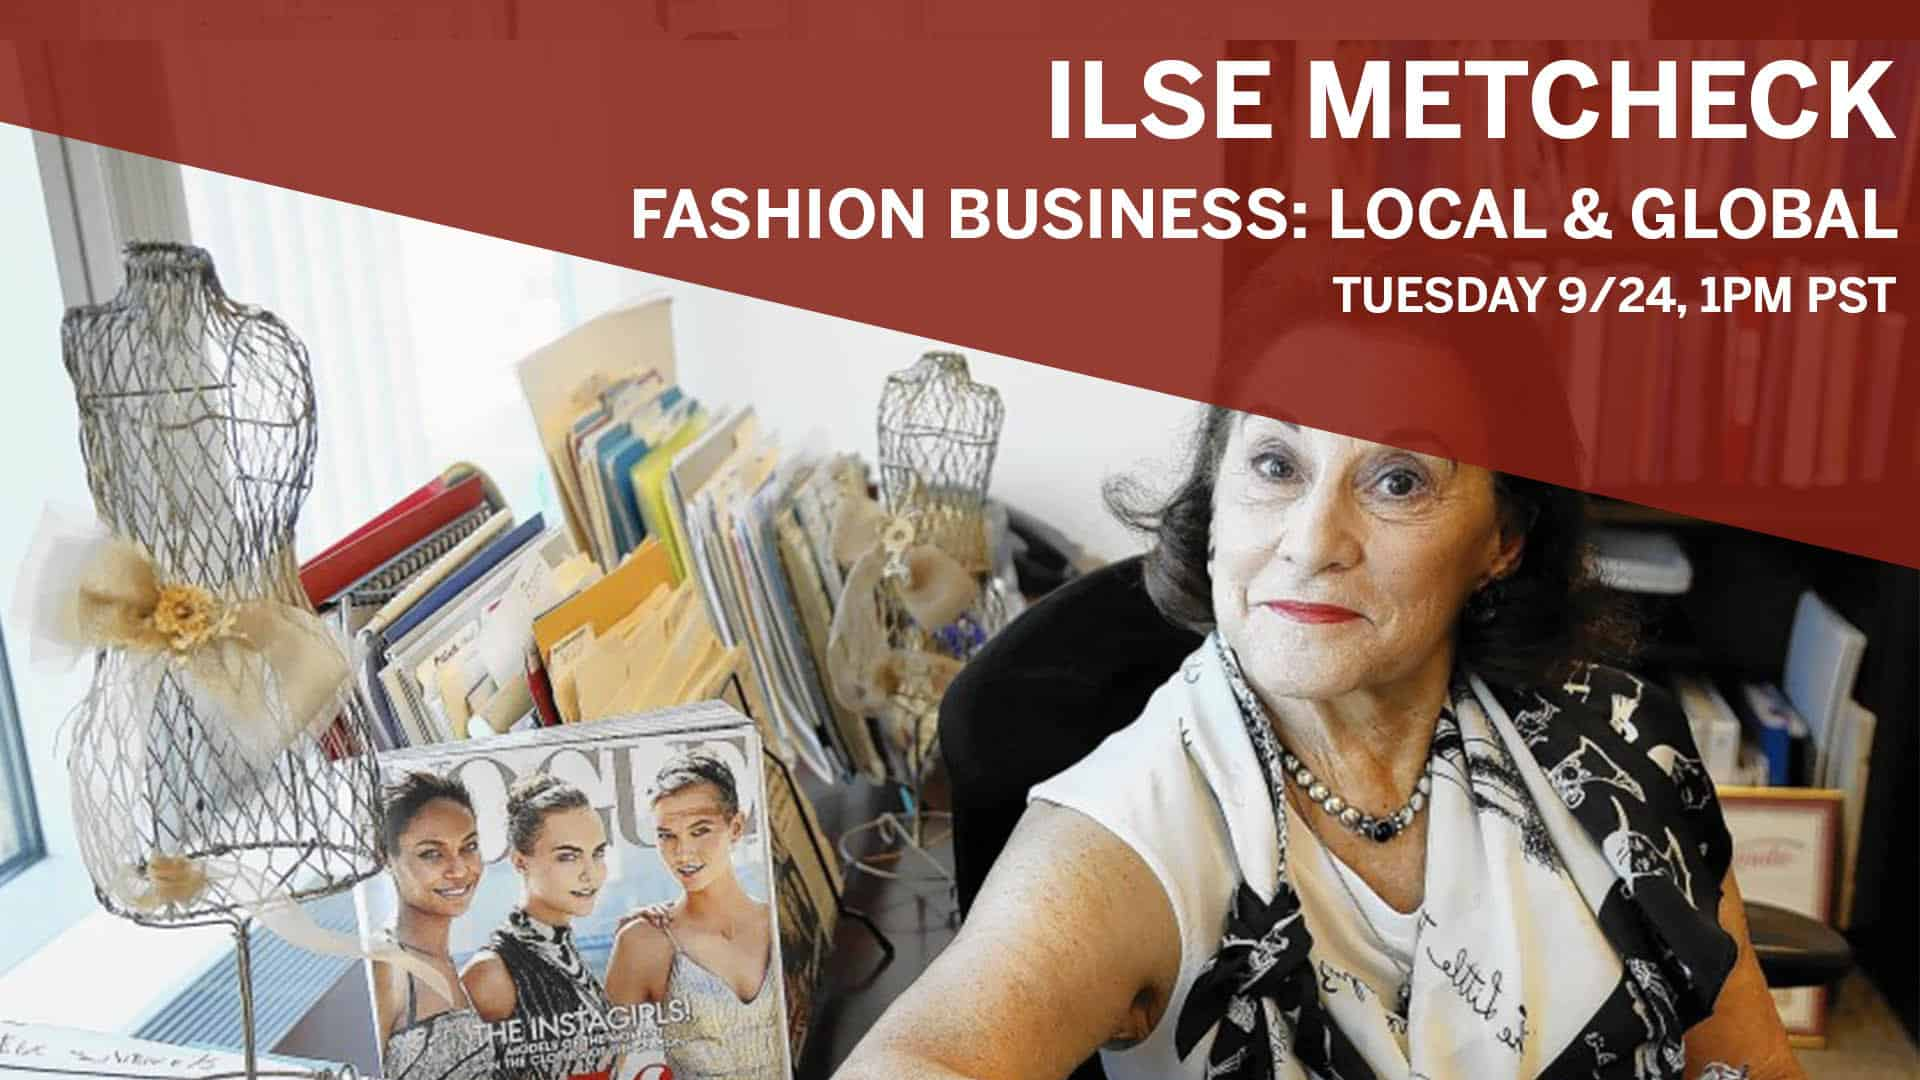 Ilse Metcheck: Fashion Business: Local & Global